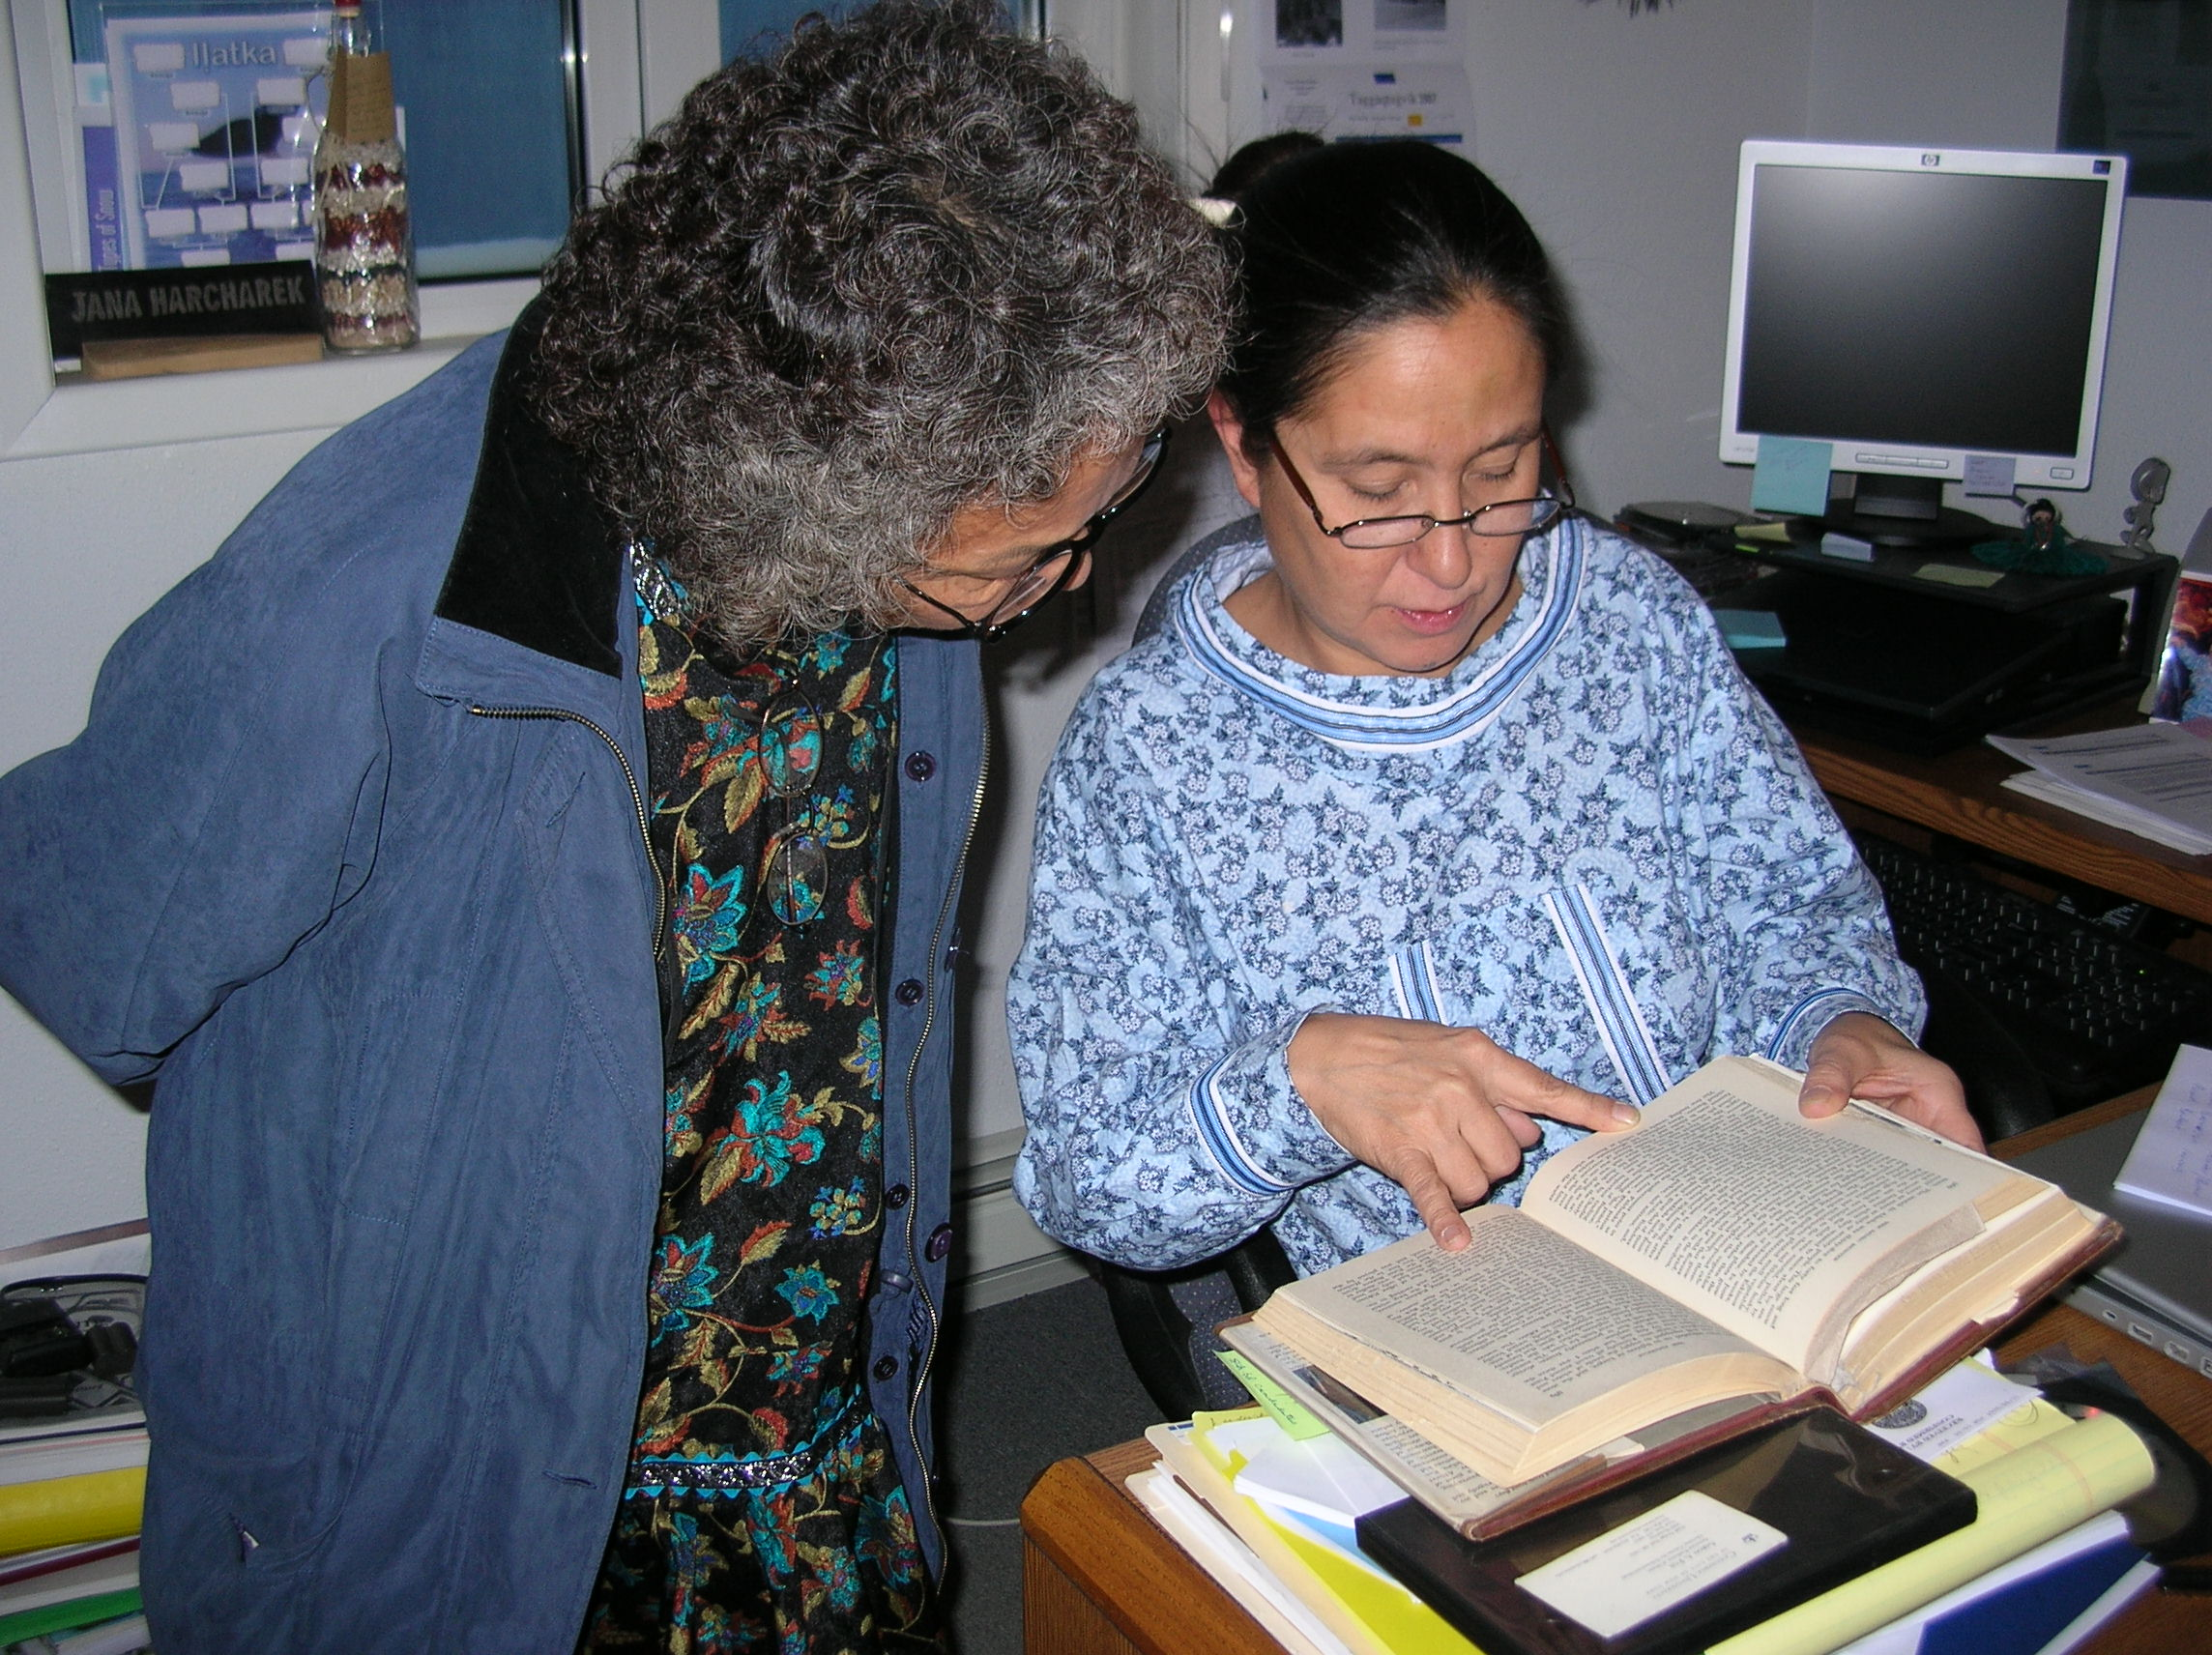 nupiaq elder Fannie Akpik and Inupiaq educator Jana Hacharek reading through Laura Boulton's account (Music Hunter) on Barrow, Alaska. Photo: Chie Sakakibara